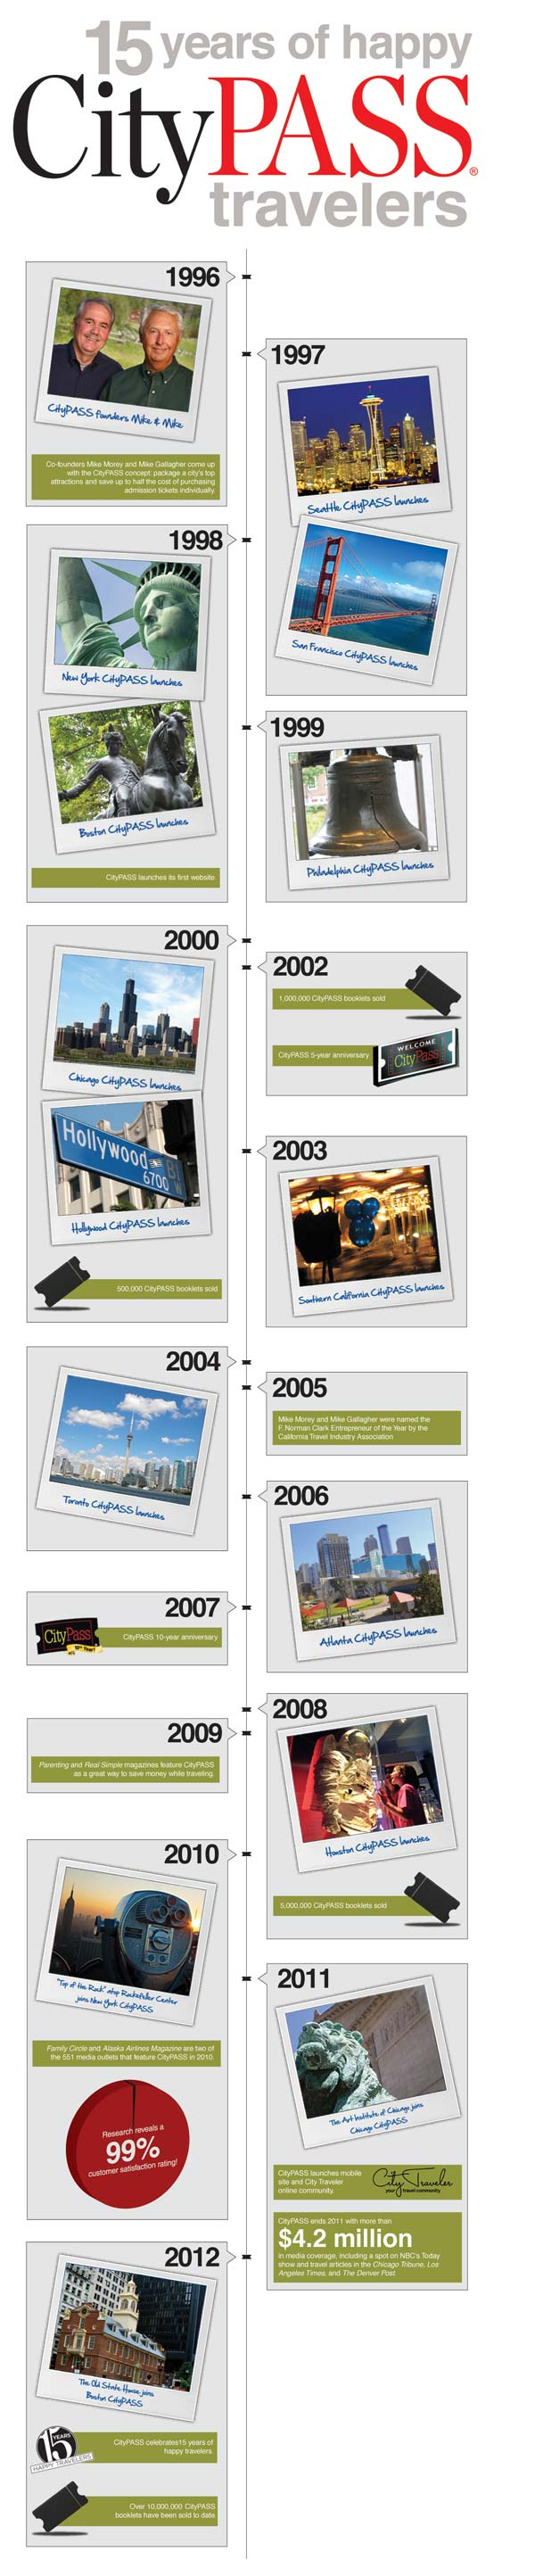 15 Years of Happy CityPASS Travelers Timeline